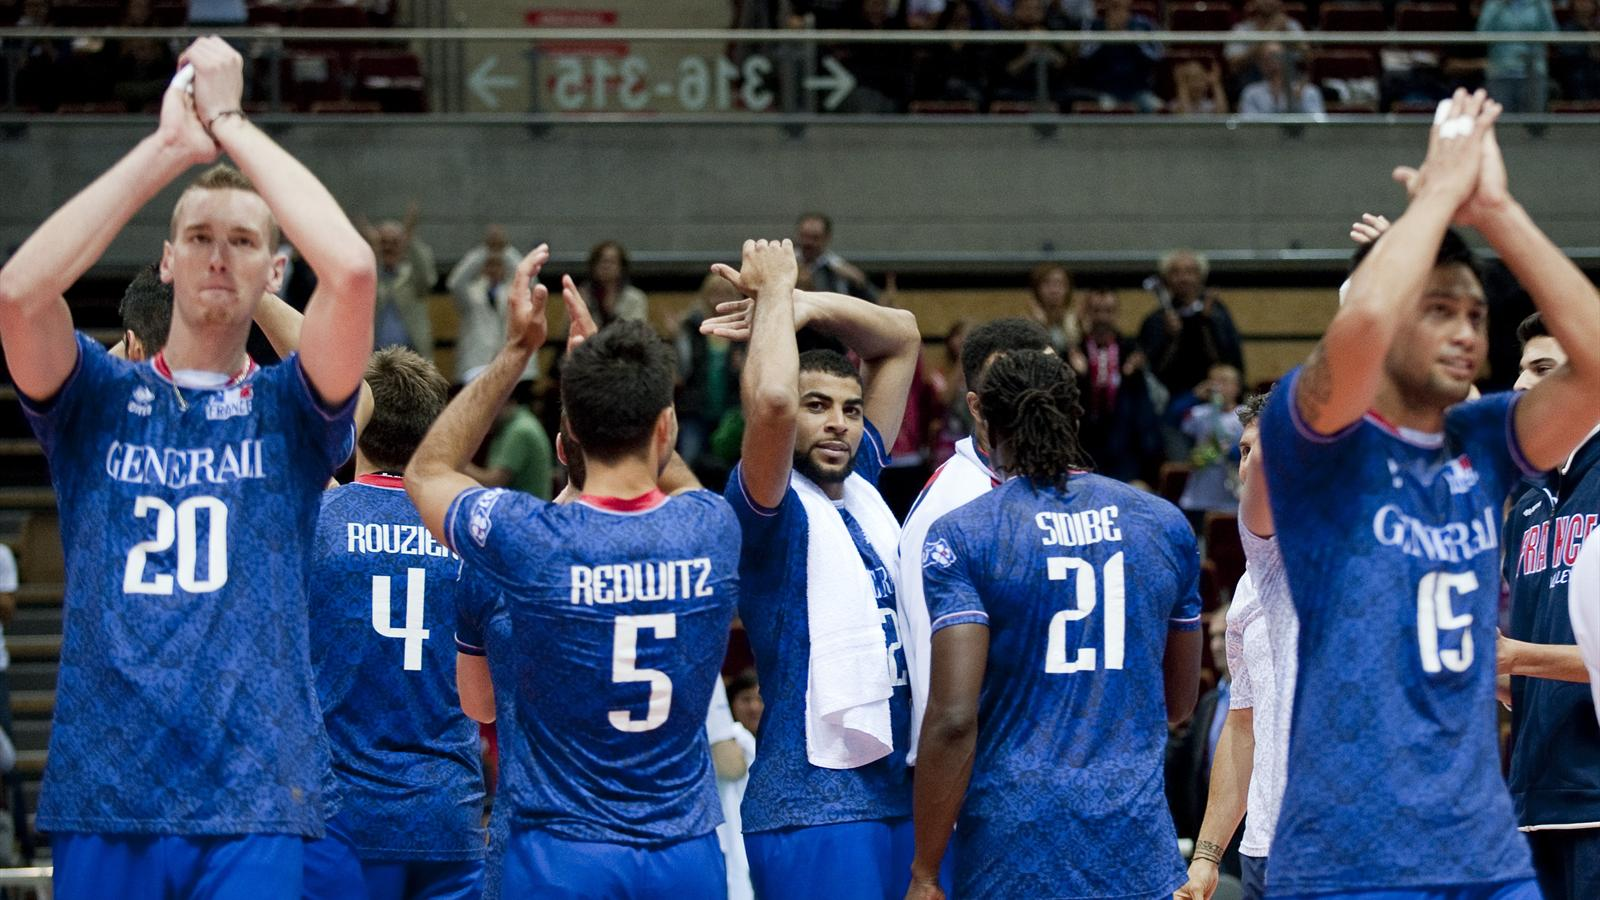 Match Volleyball France vs Australie en direct streaming live